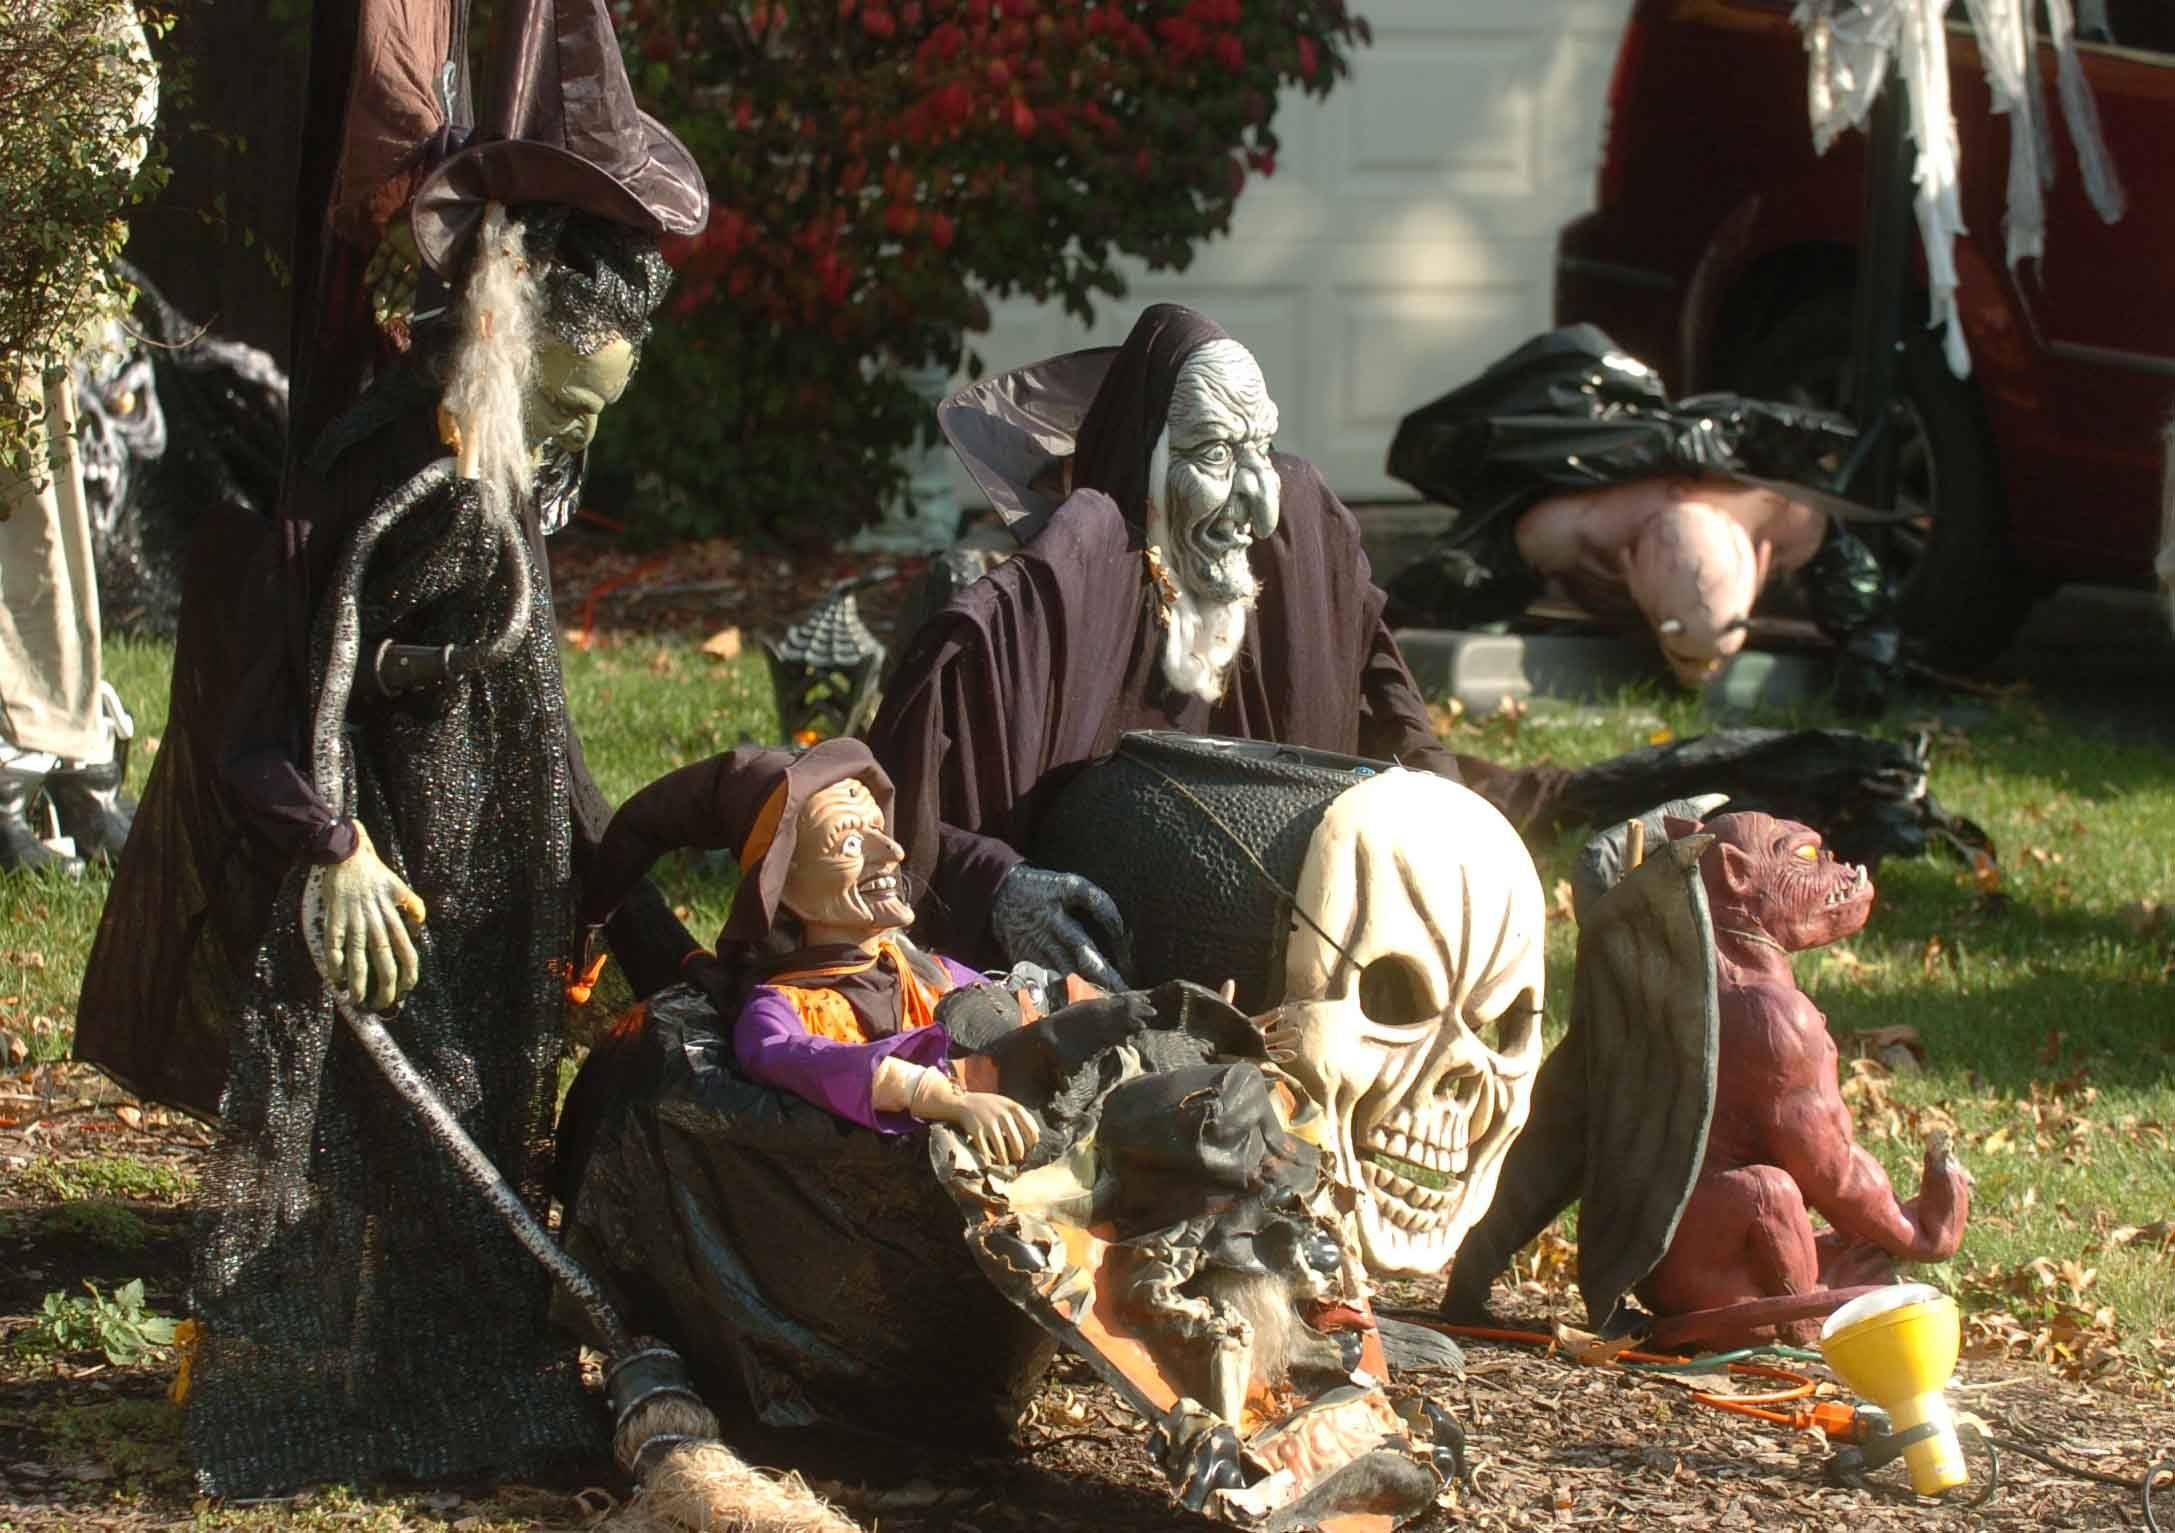 The National Retail Federation reports that consumers are planning to spend a little more this year -- despite the economy -- to decorate for Halloween this year. This house at 12 N. River Road is testament to that.